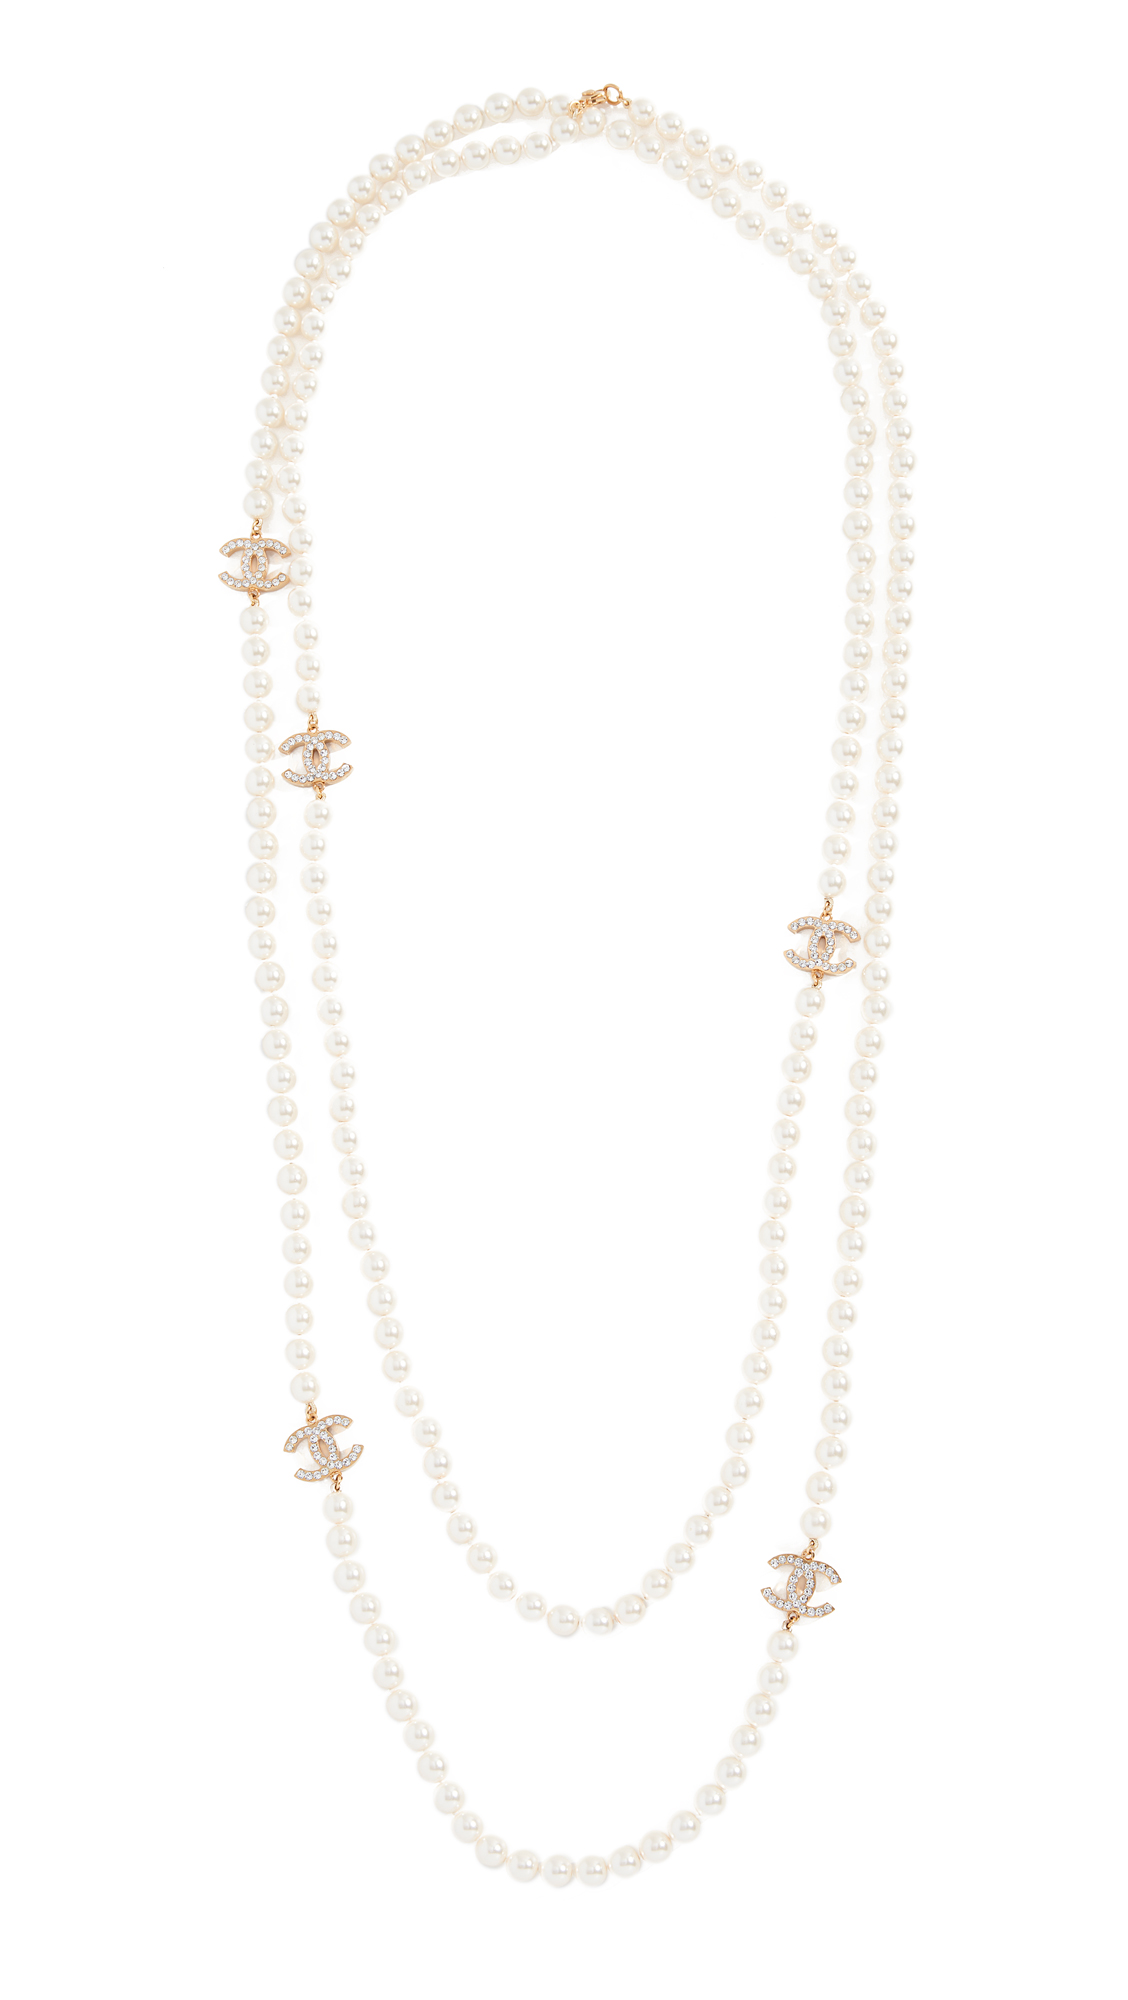 WHAT GOES AROUND COMES AROUND CHANEL PEARL CRYSTAL CC NECKLACE